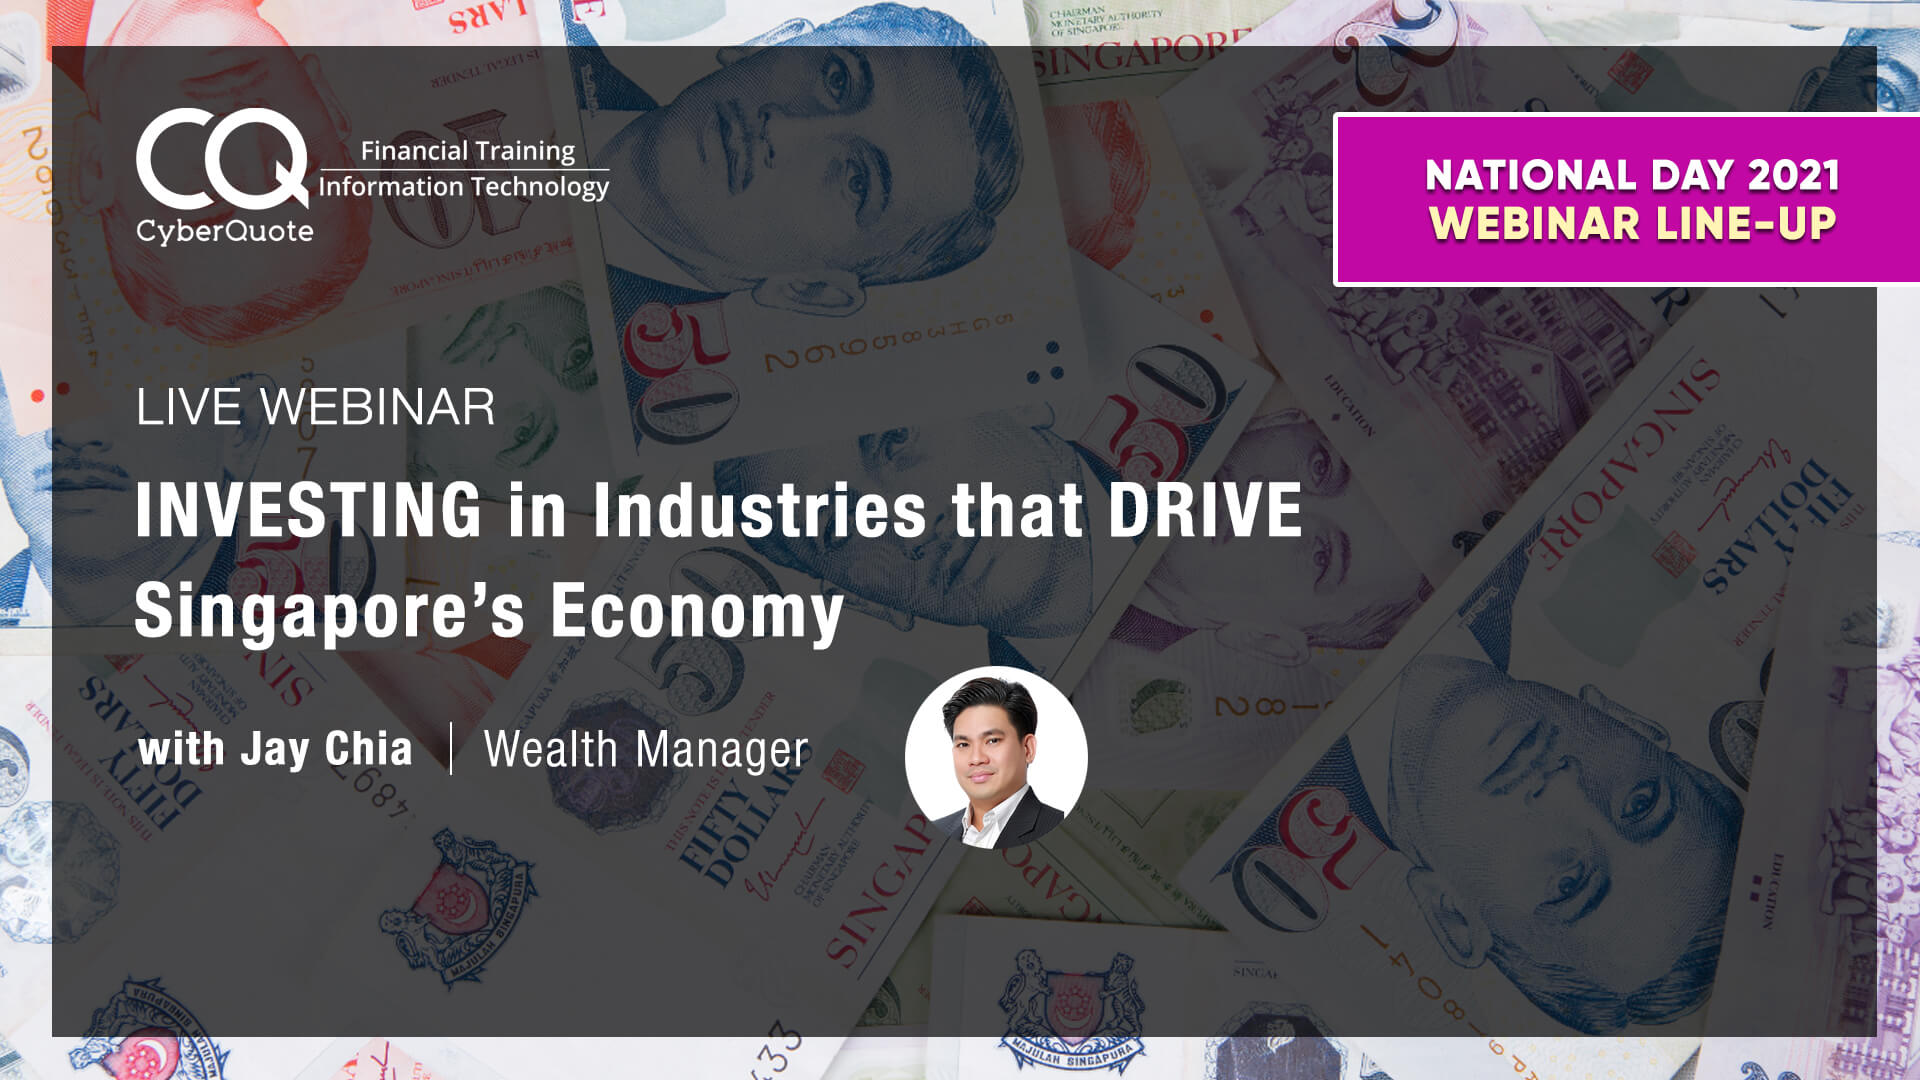 Investing in Industries that Drive Digital Links Cover National Day